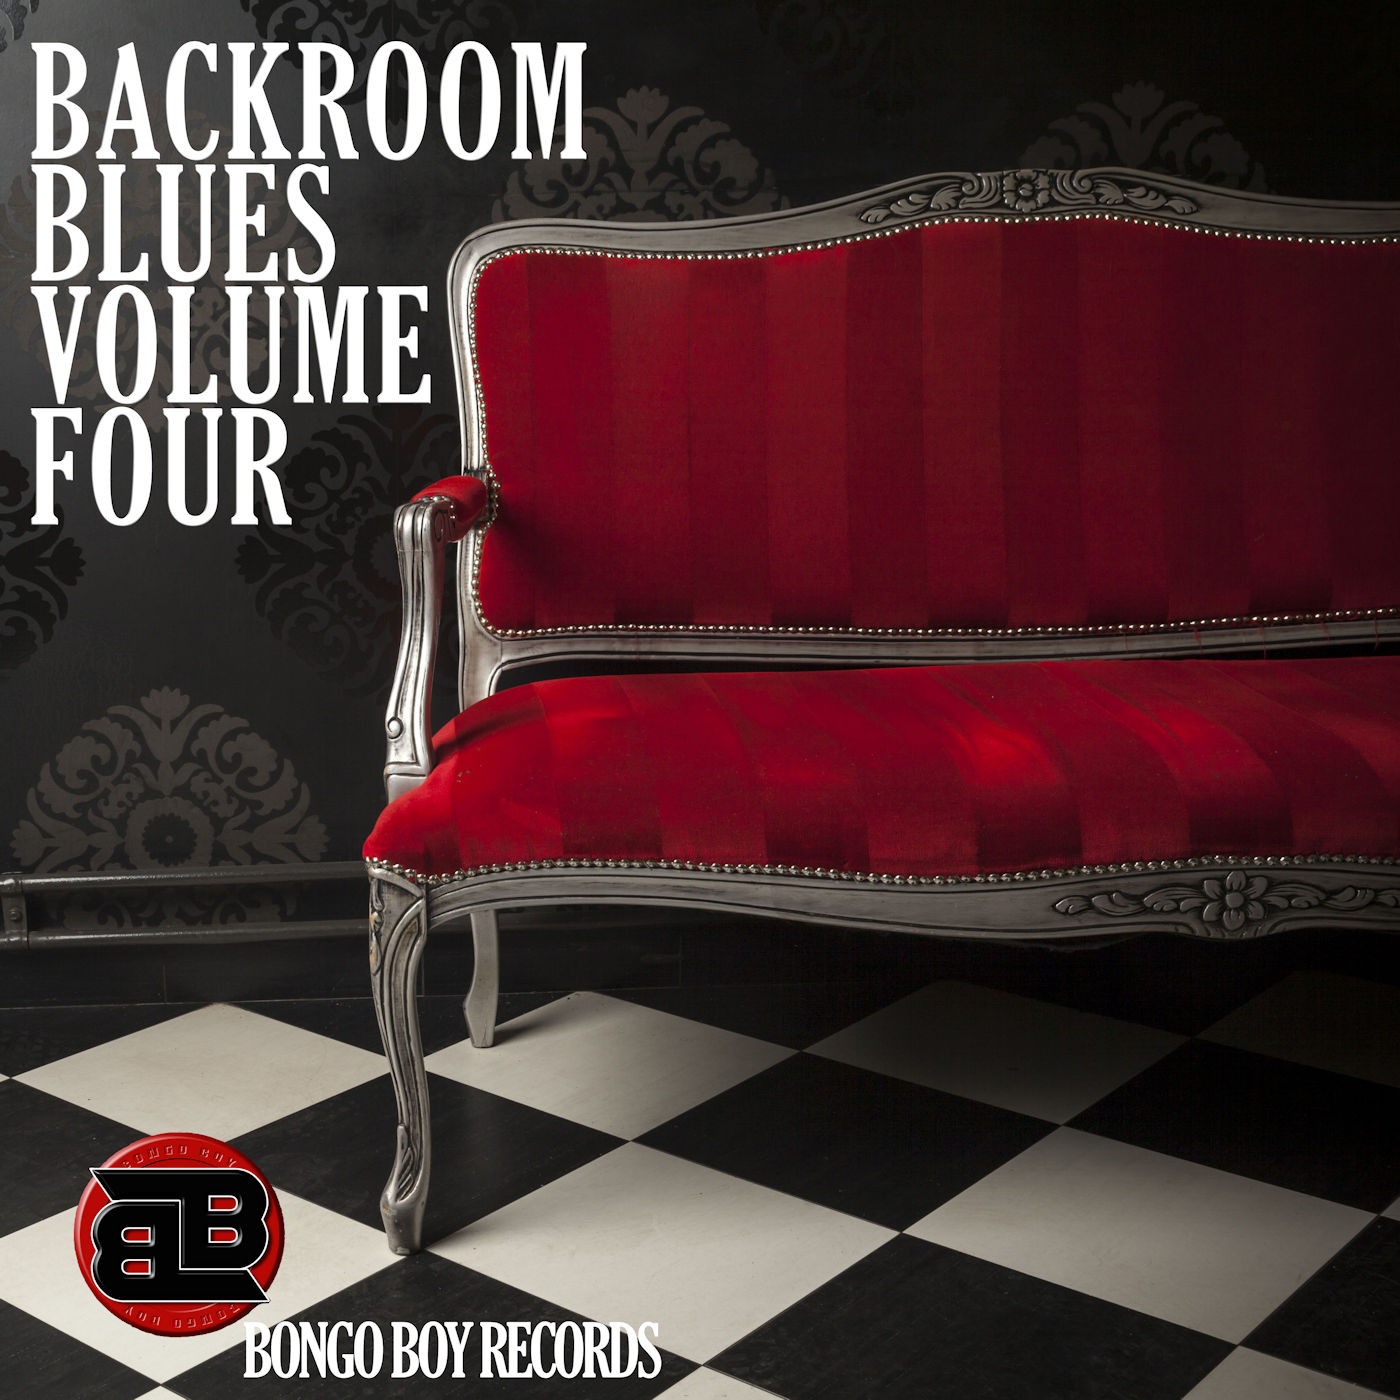 Backroom Blues Volume Four